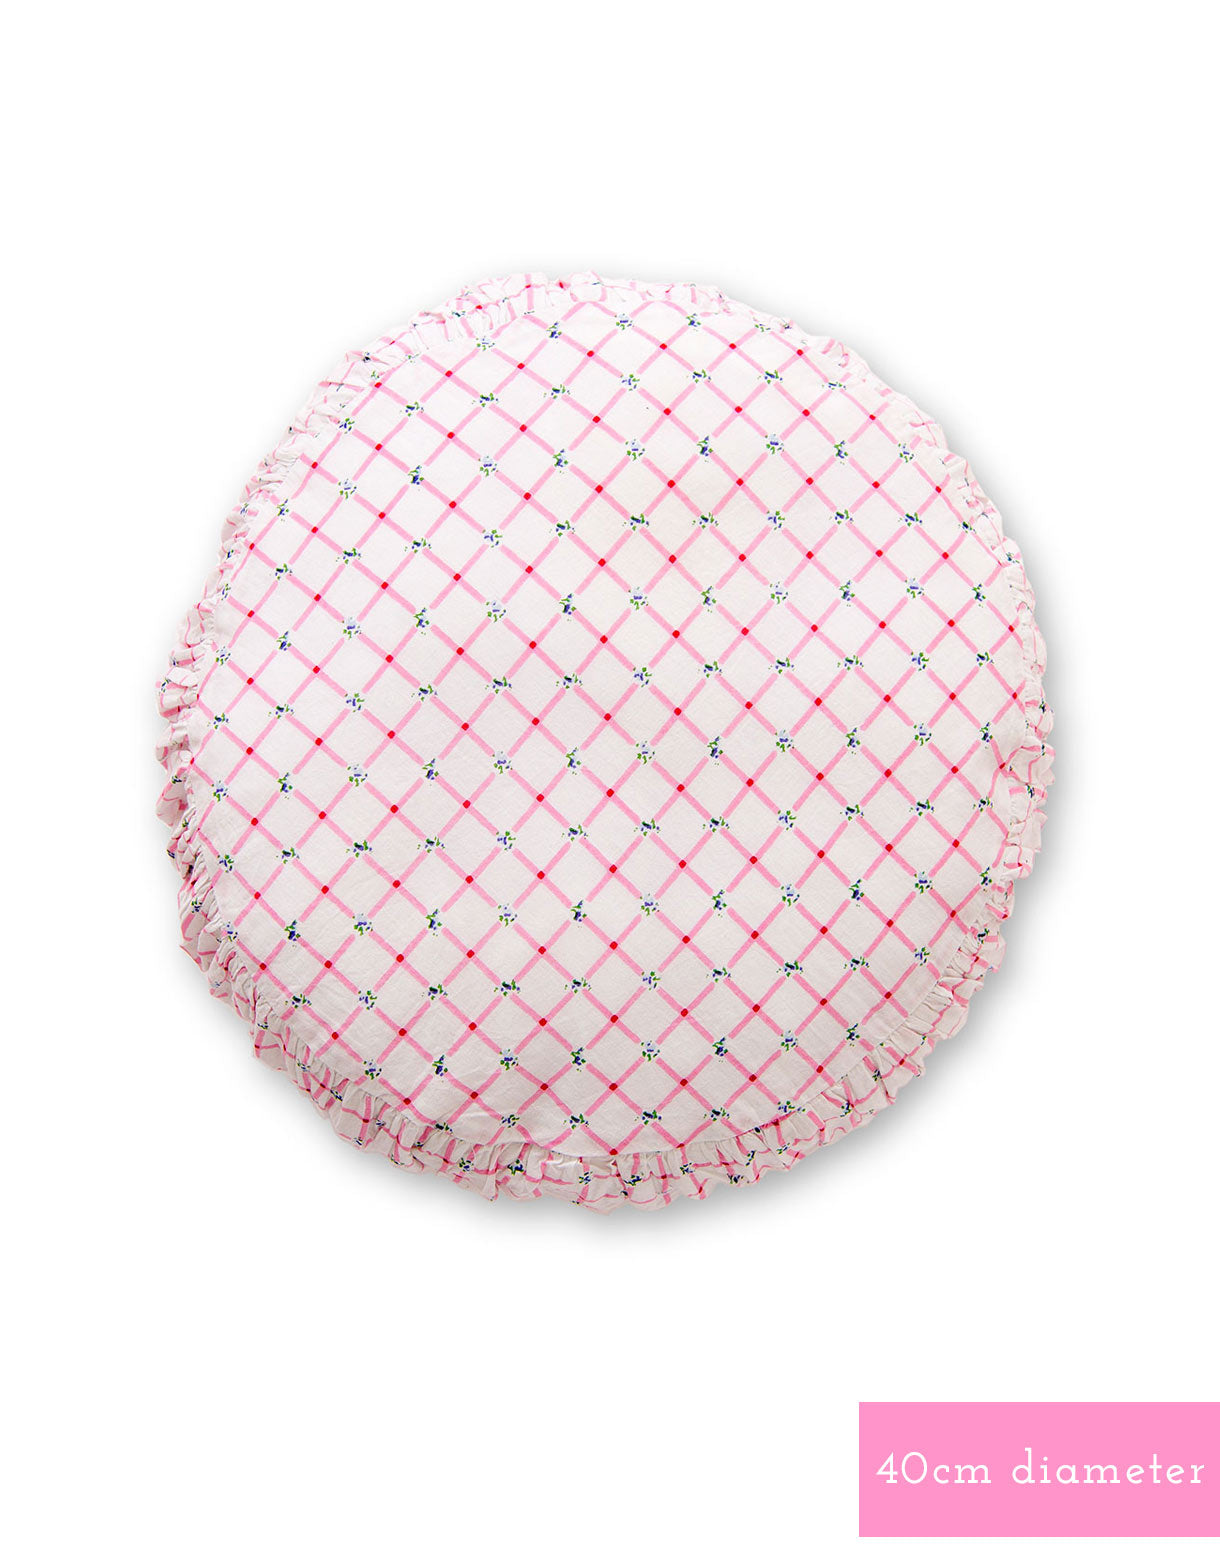 Small round cushion cover in Picnic Pink